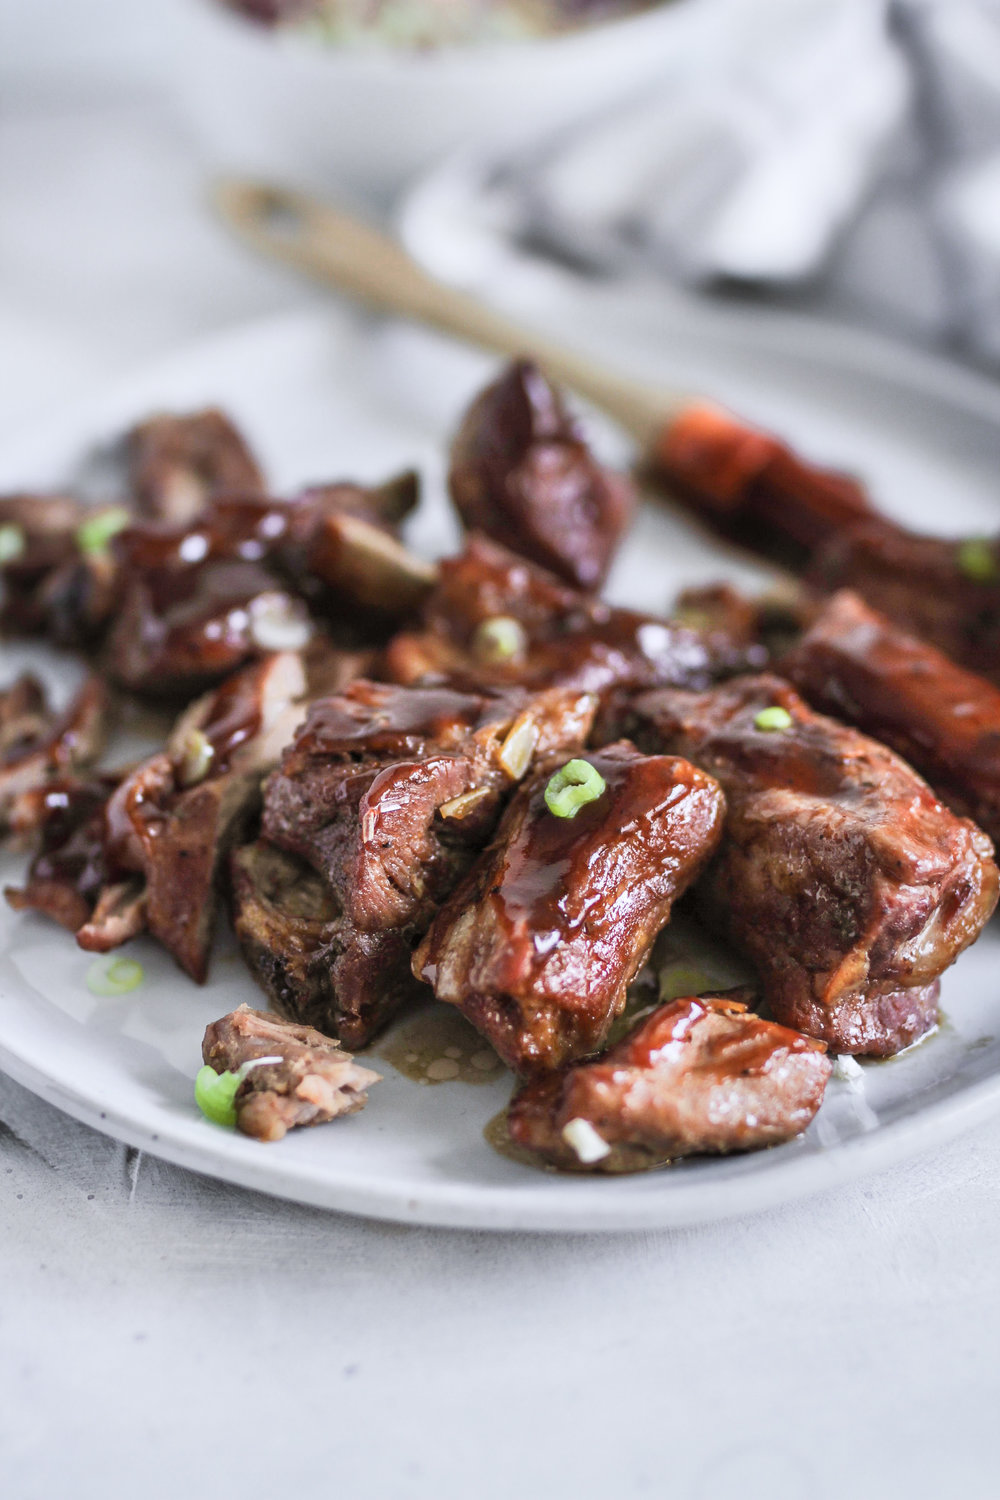 Recipe of the day:  Easy BBQ Oven Cooked Fall Off the Bone Short Ribs  -